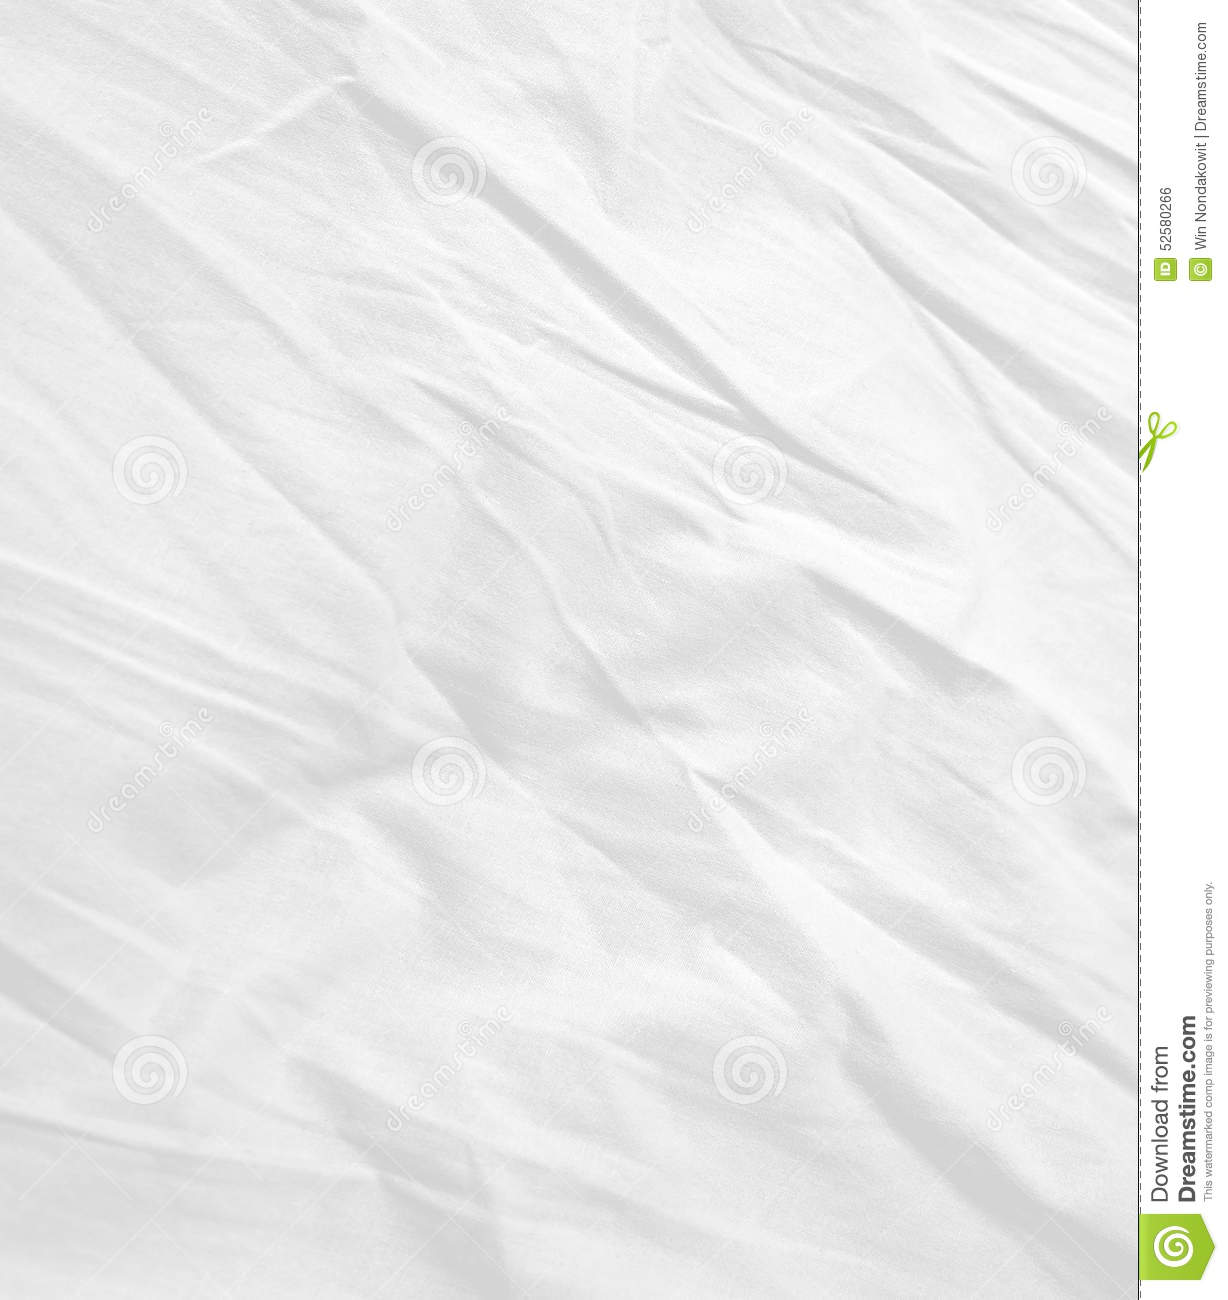 Soft white bed sheets background